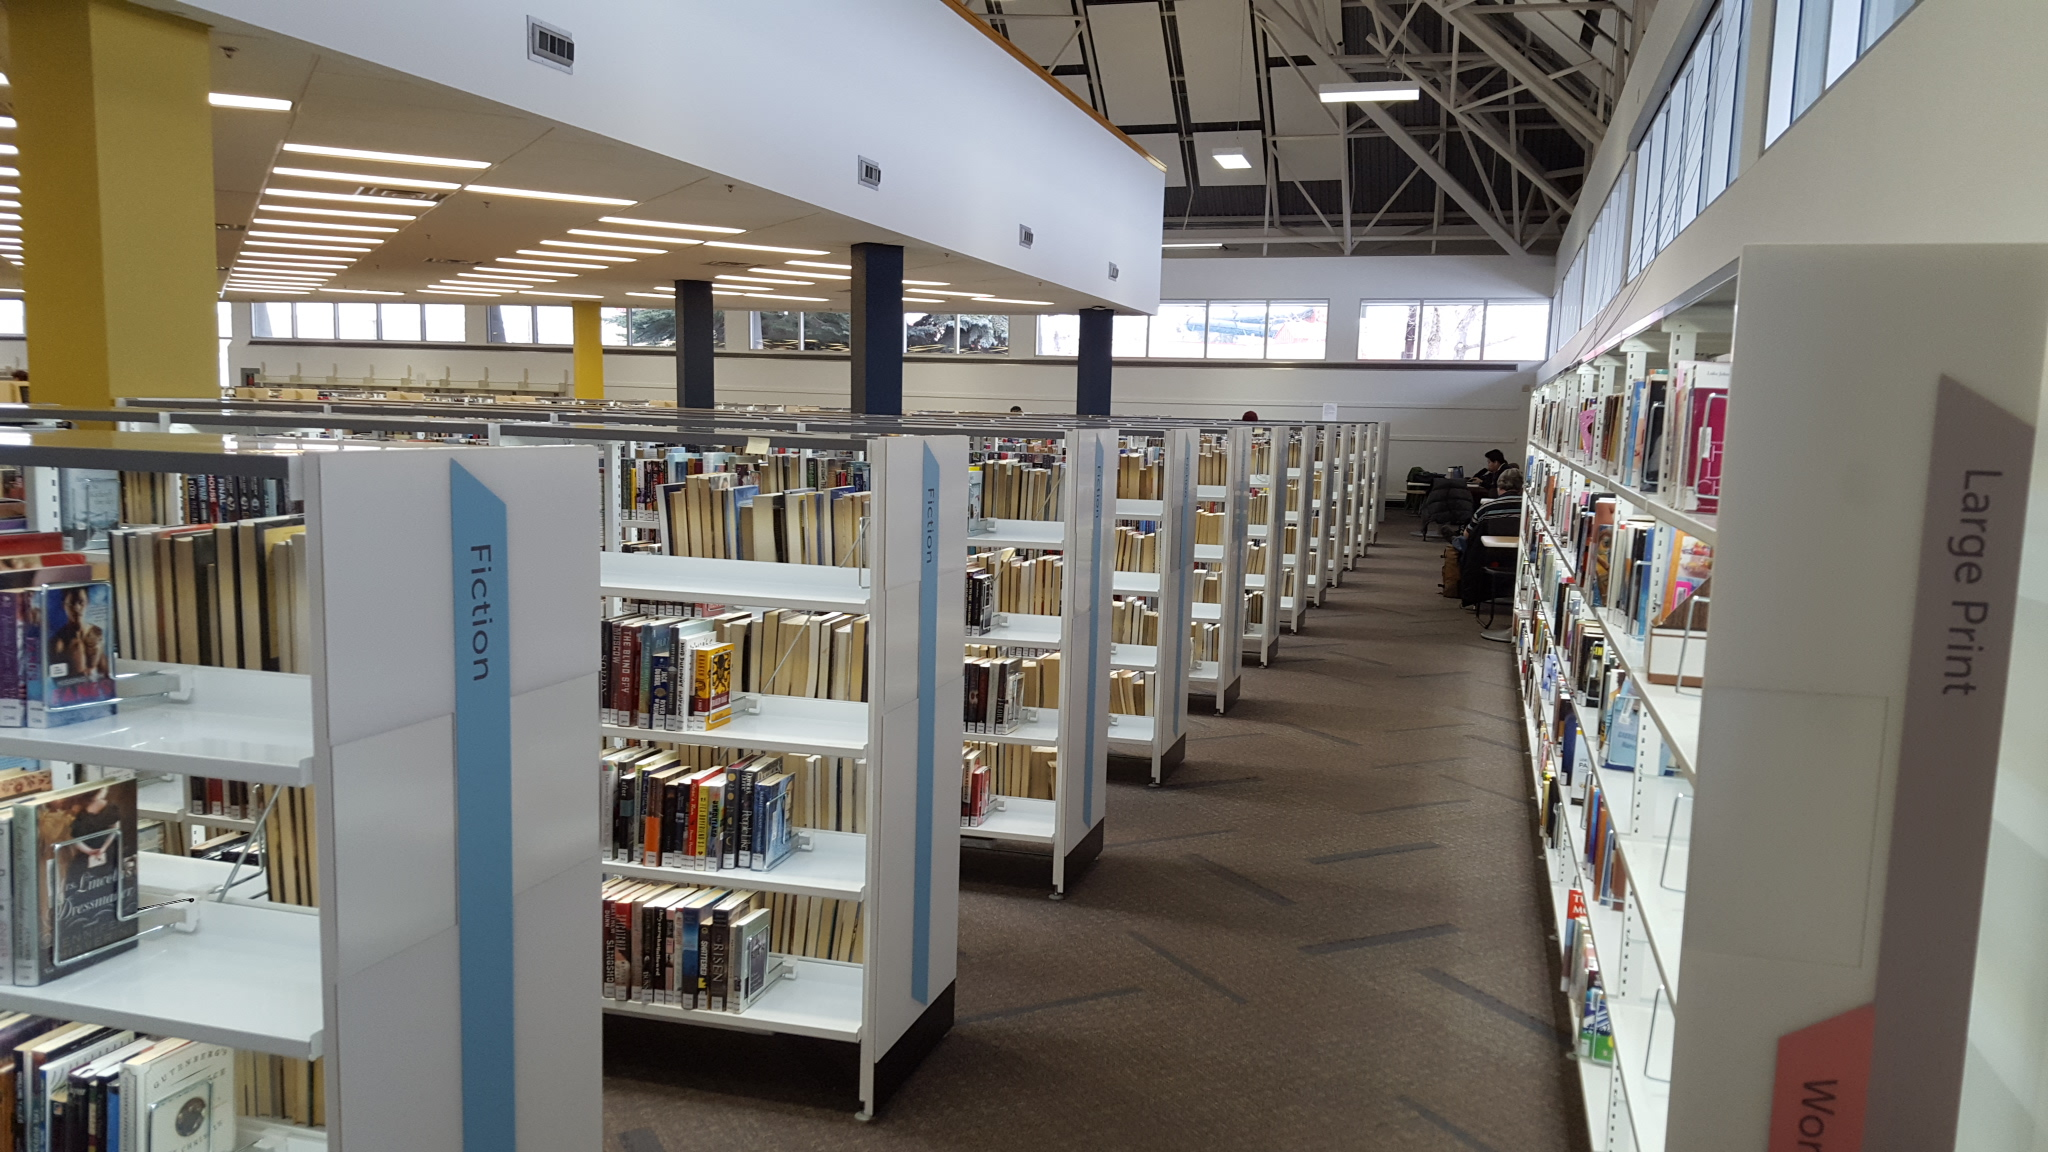 furniture for libraries. For More Information On How BCI Modern Library Furniture Can Enhance Your Next Renovation Project, Contact Us Today. We Have Many Options Planning And Libraries